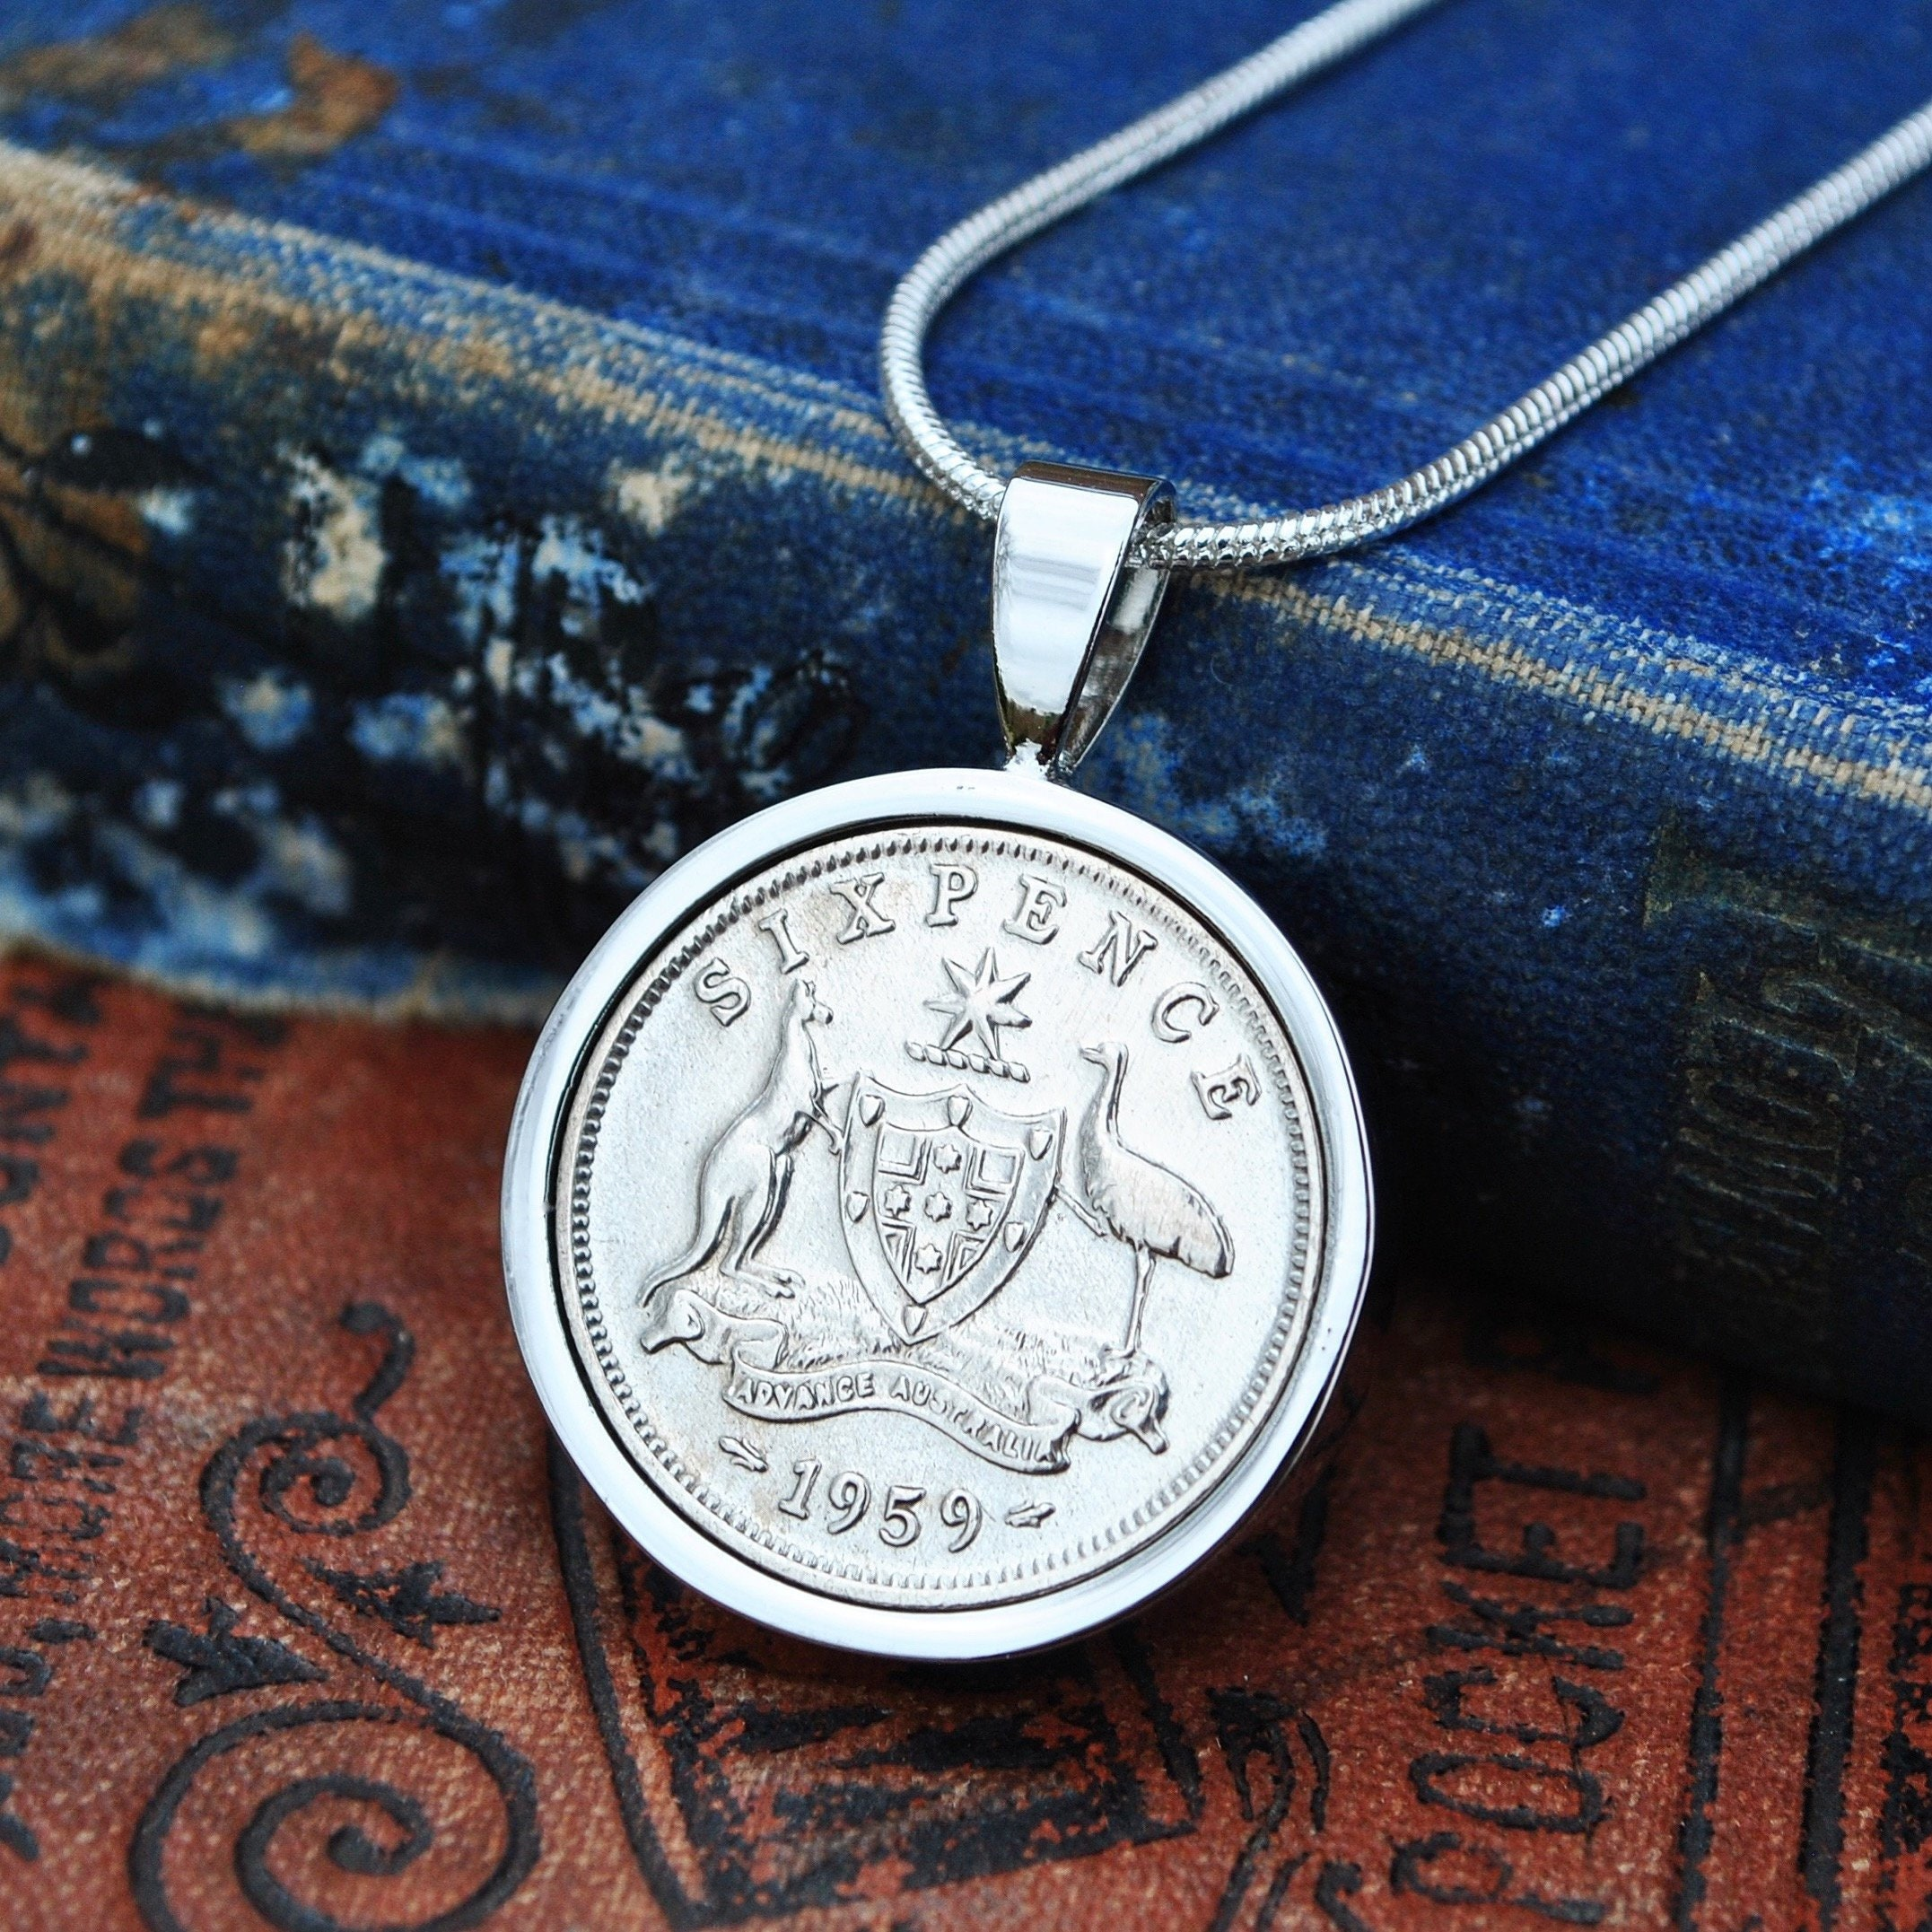 1959 60th Birthday Gift Her Necklace Sixpence Coin Australian Silver Ladies Wife Mum Anniversary